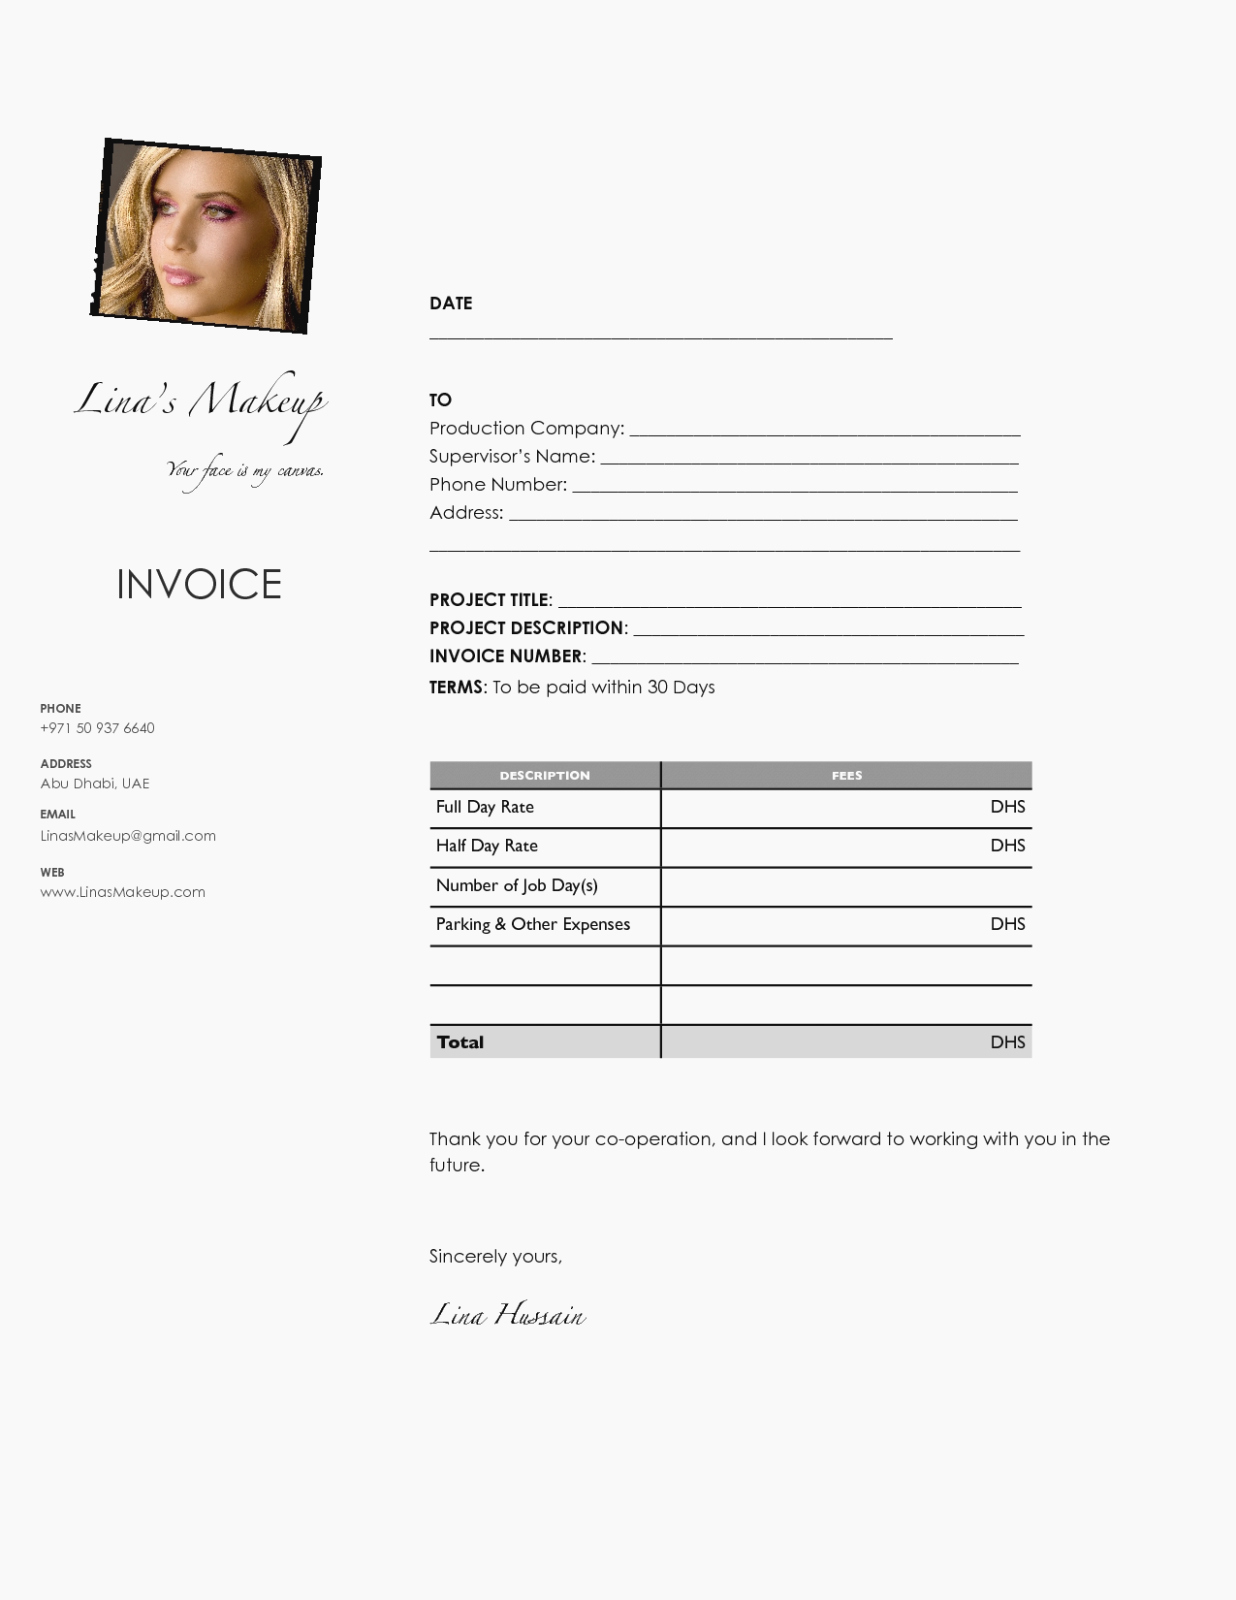 Makeup Artist Invoice Template Luxury Five Moments to Remember